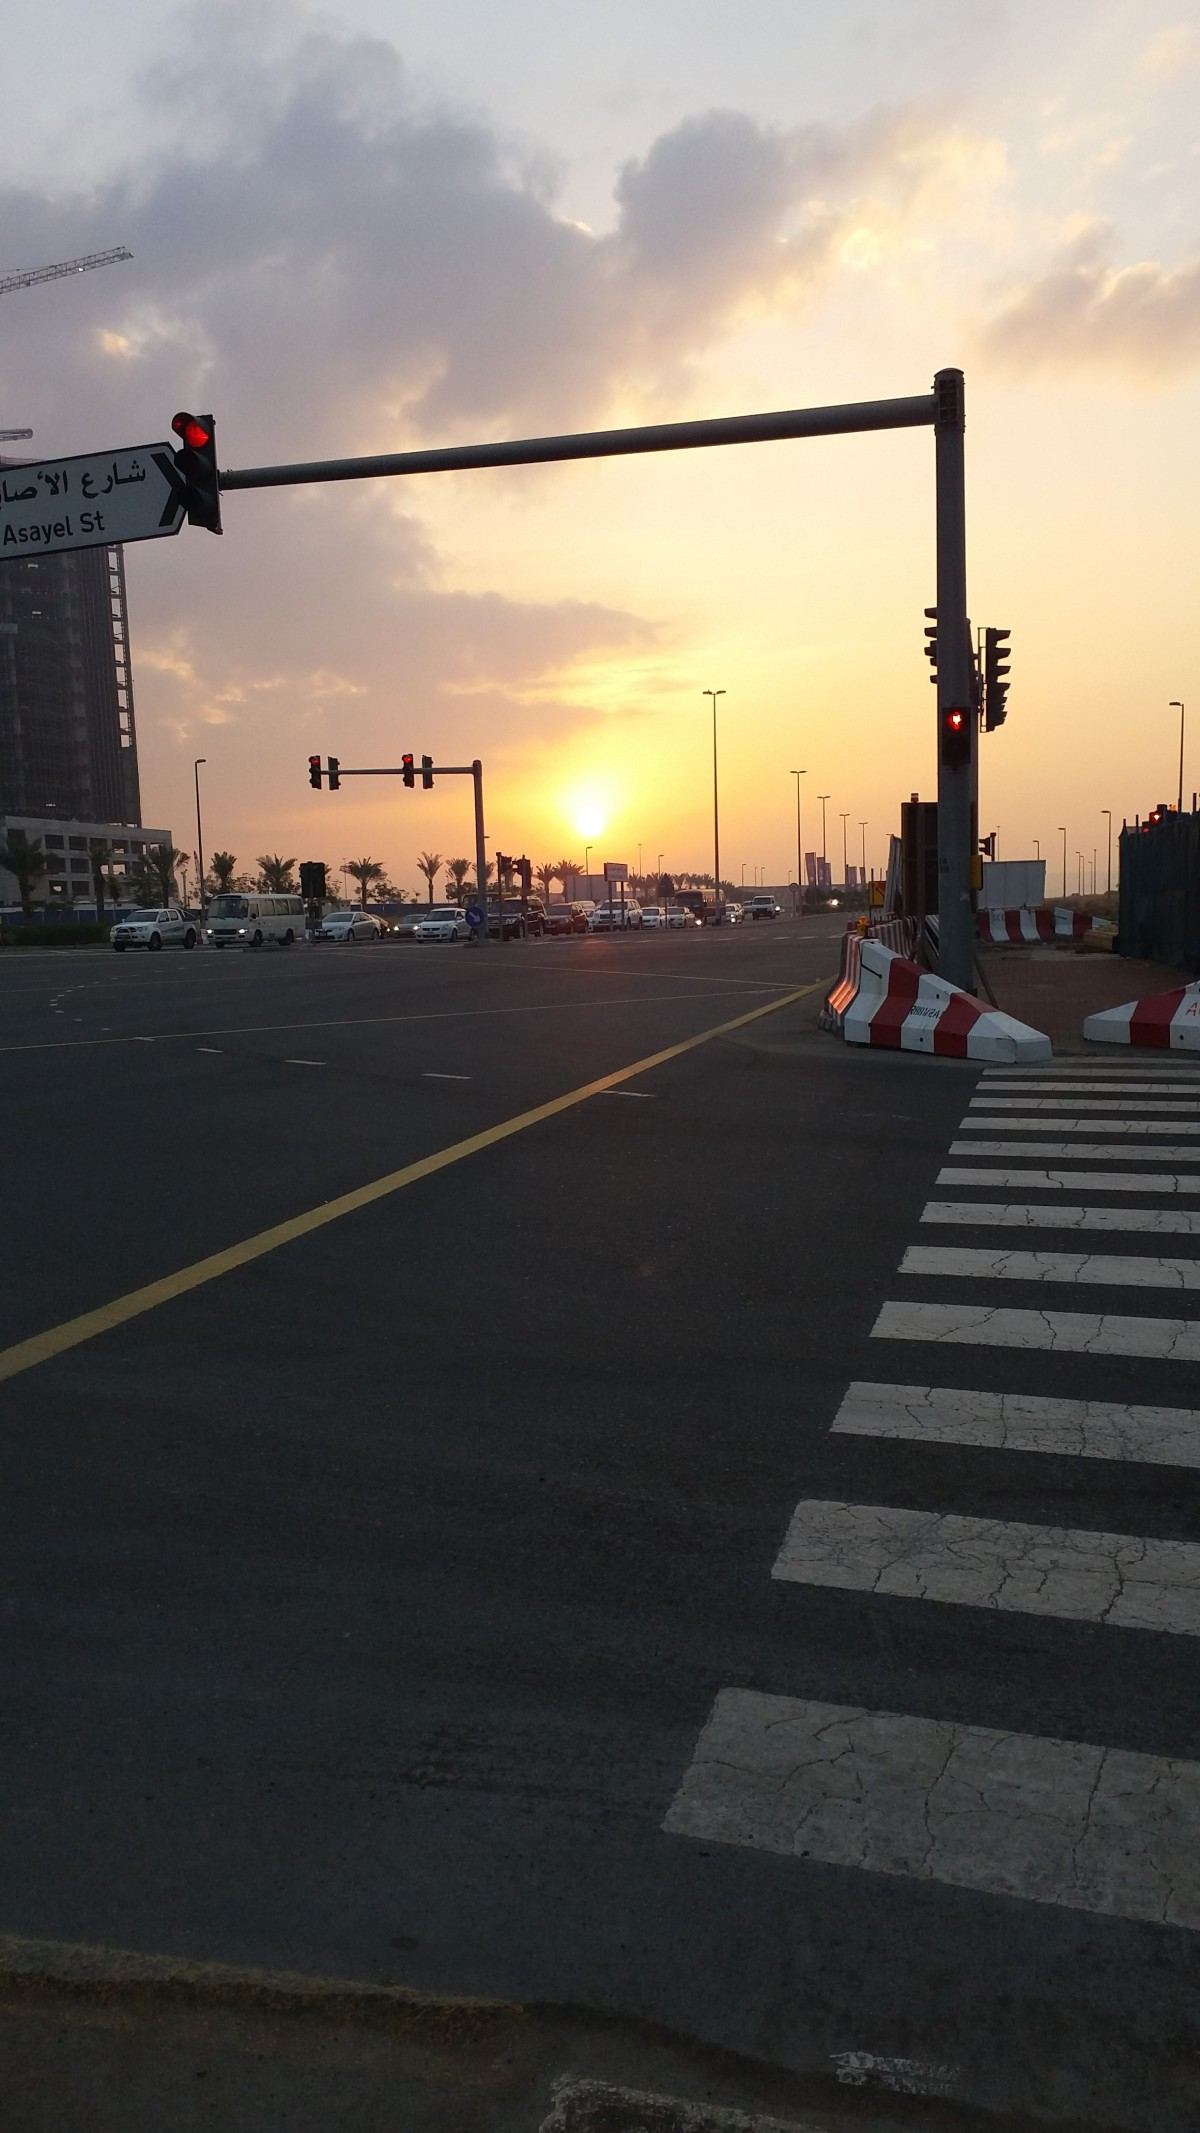 Sunrise and Traffic Lights